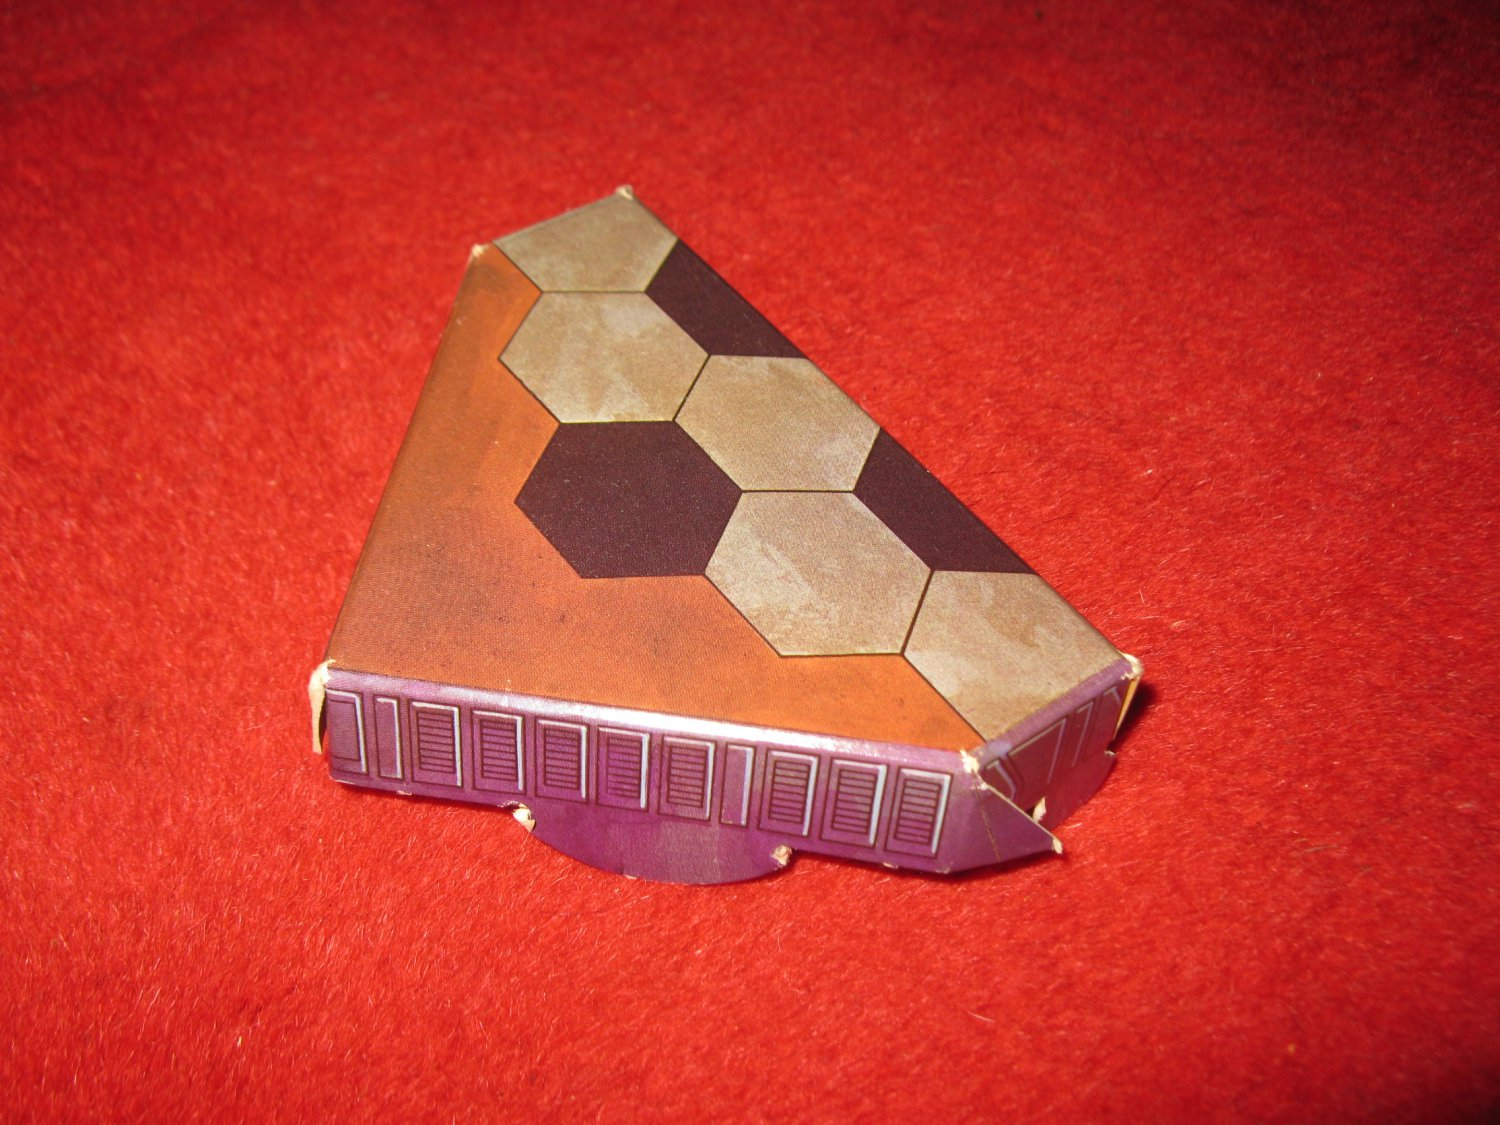 1983 Star Wars; Battle at Sarlacc's Pit Board Game Piece: Game Board part H